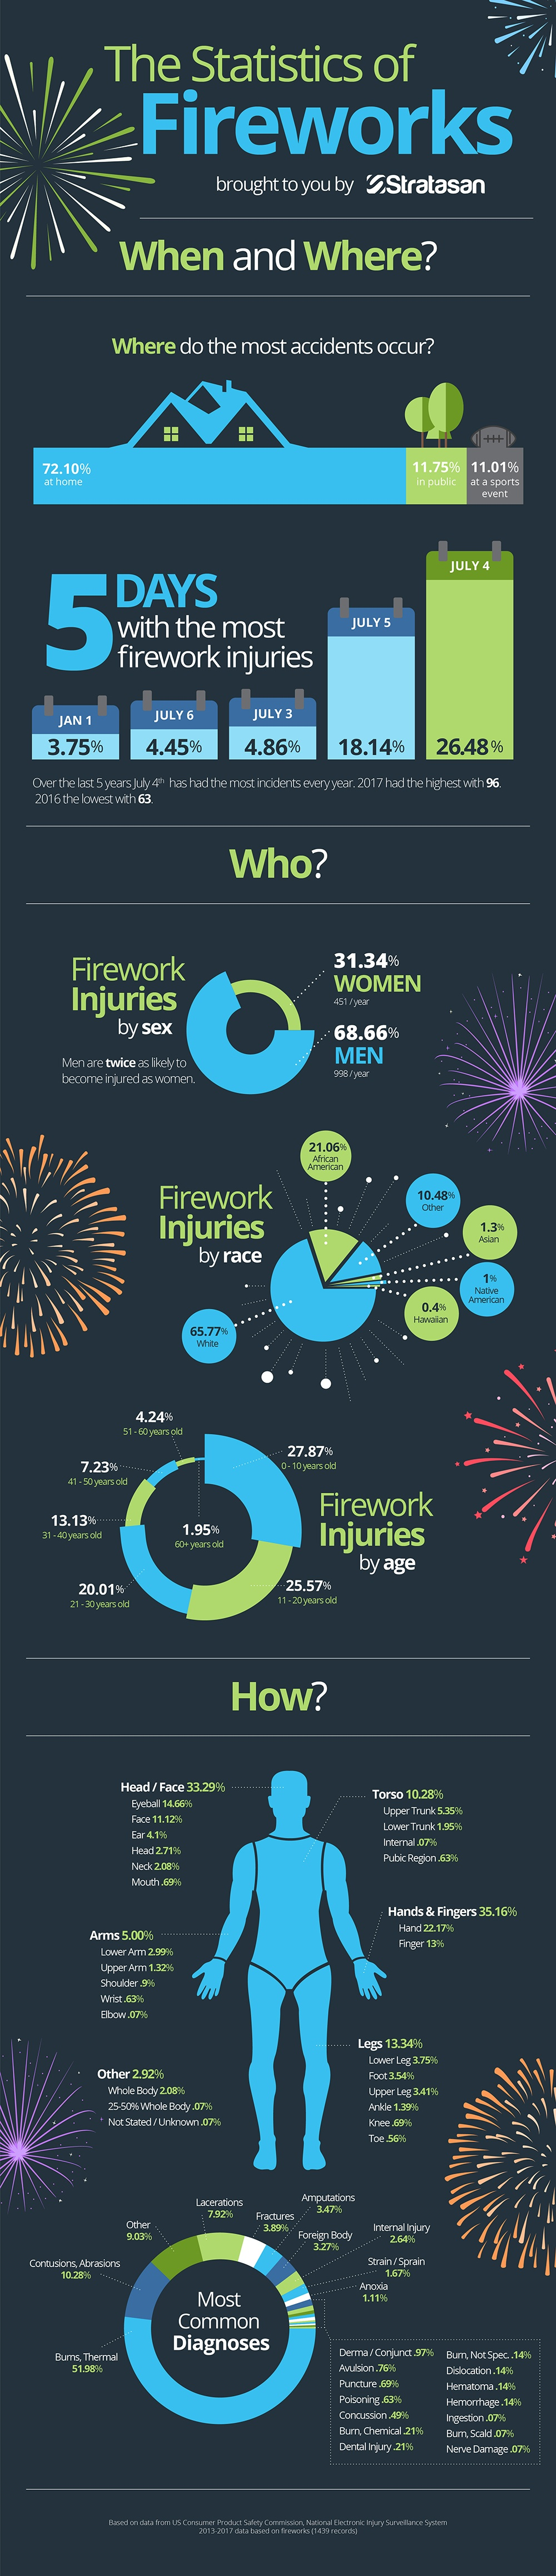 Infographic on fireworks statistics in the last 5 years